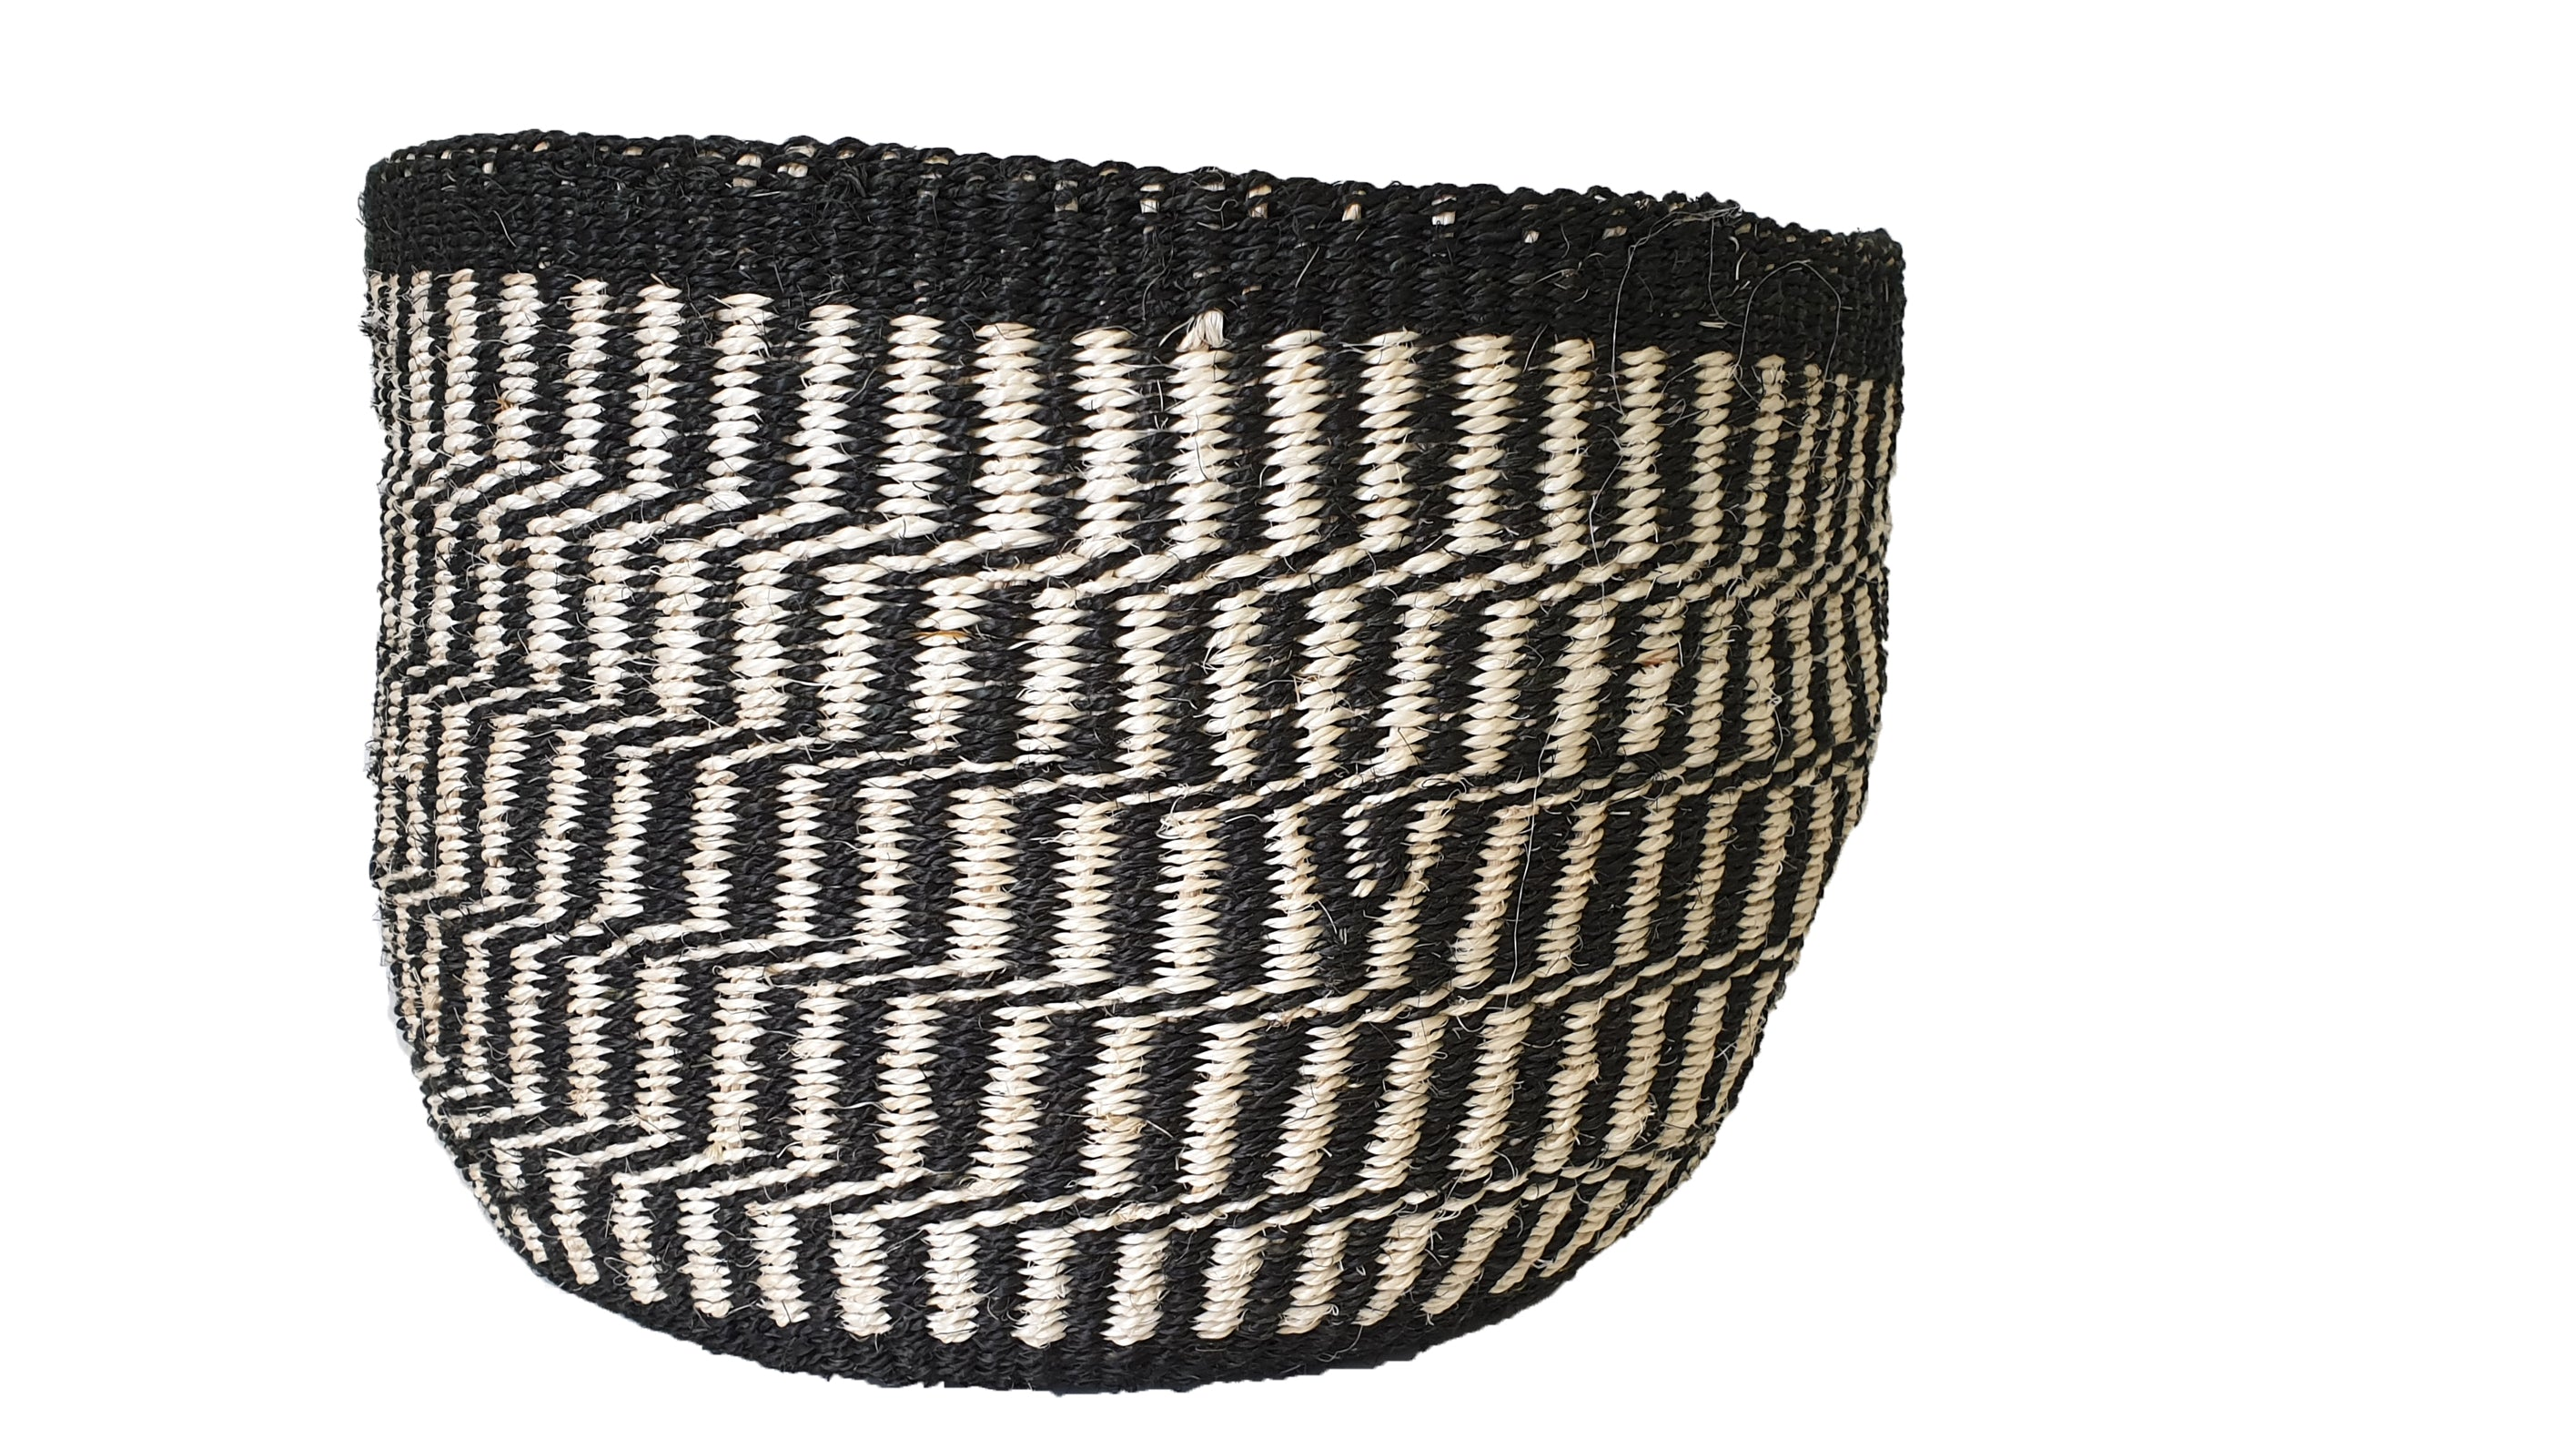 AU NATURALE Kiondo // Natural Handwoven Basket // Made of Black & White Sisal